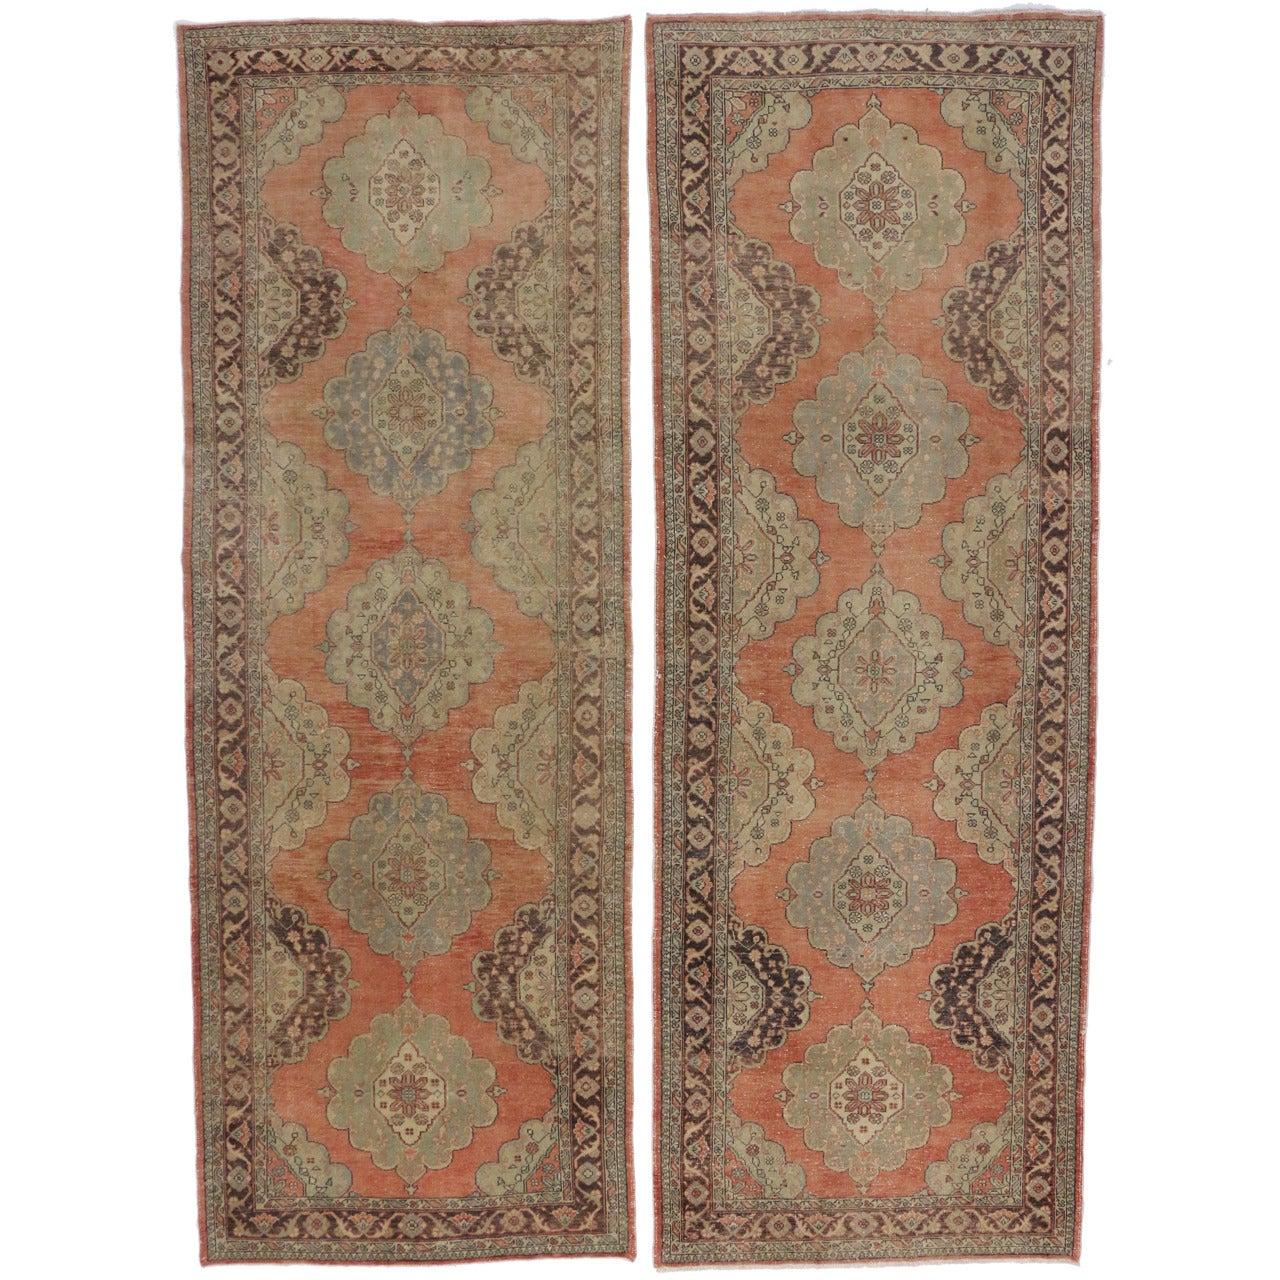 Pair of Vintage Turkish Oushak Gallery Rugs, Matching Wide Hallway Runners